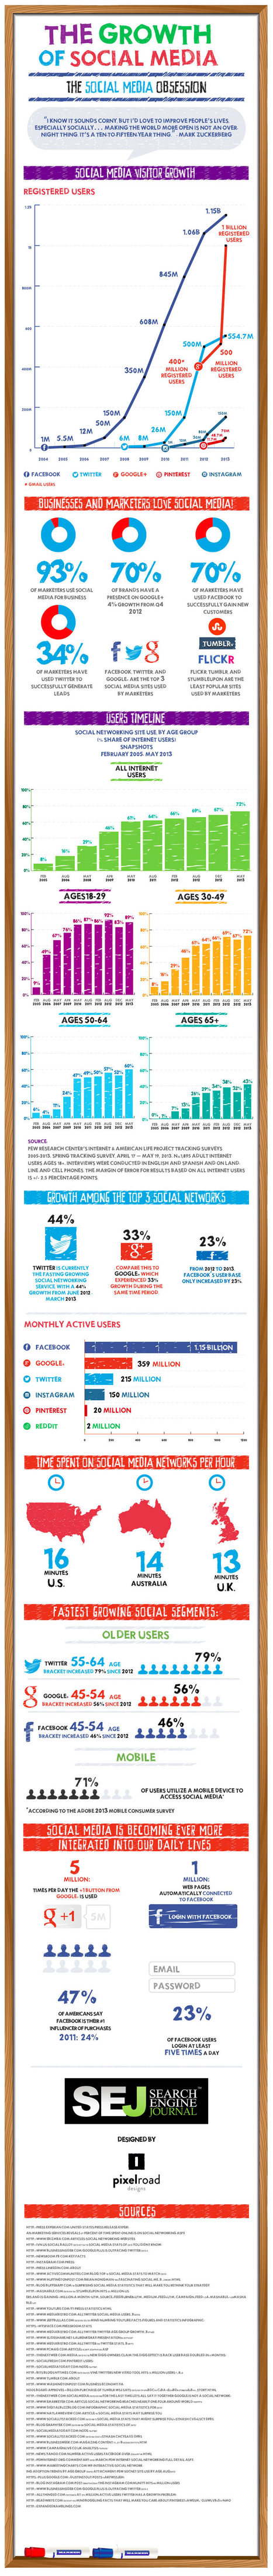 The Growth and Obsession of Social Media Management an infographic /@BerriePelser | Online Visibility | Scoop.it